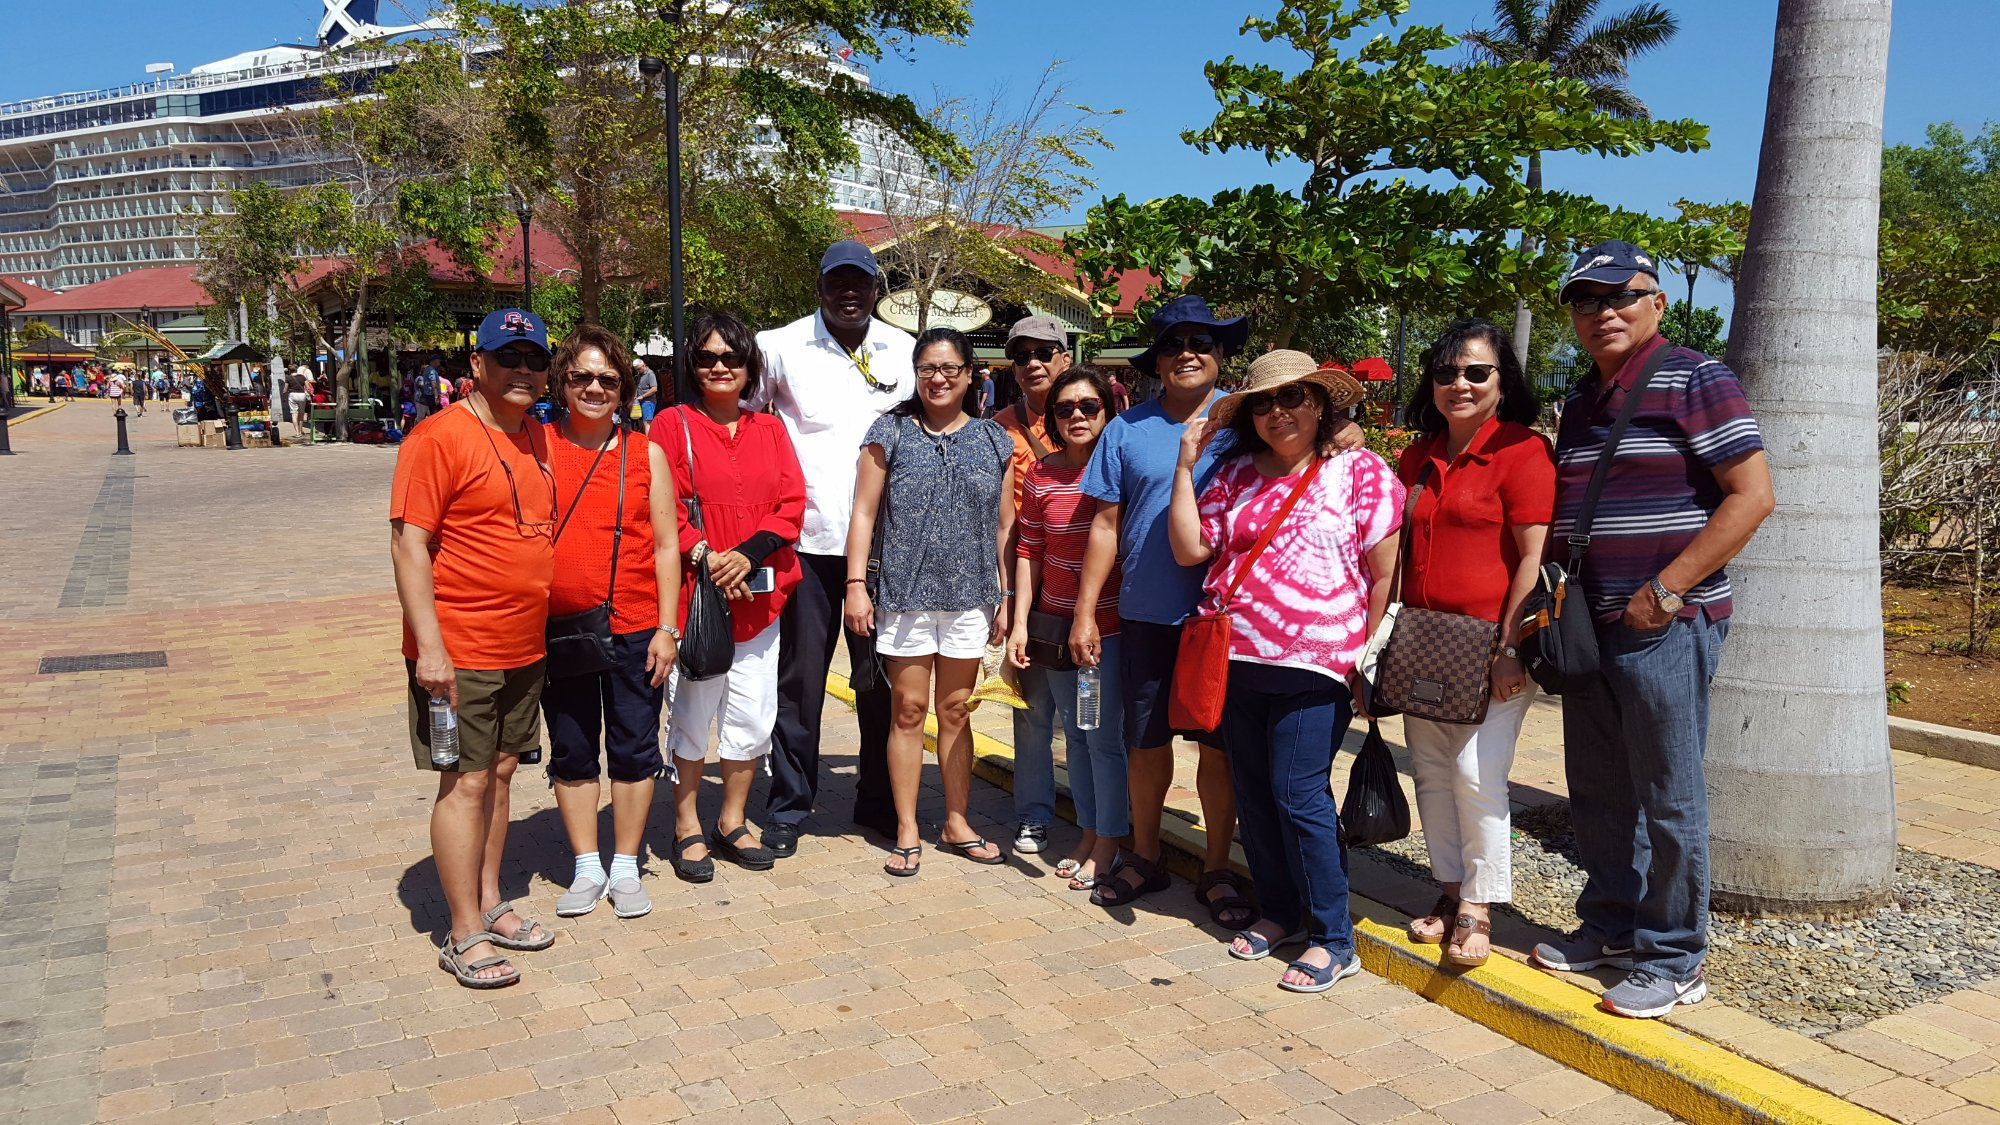 WOF VIP Tours - Wayne Ferguson posing with our group of 10 friends.. Email:wofjamaicatours@gmail